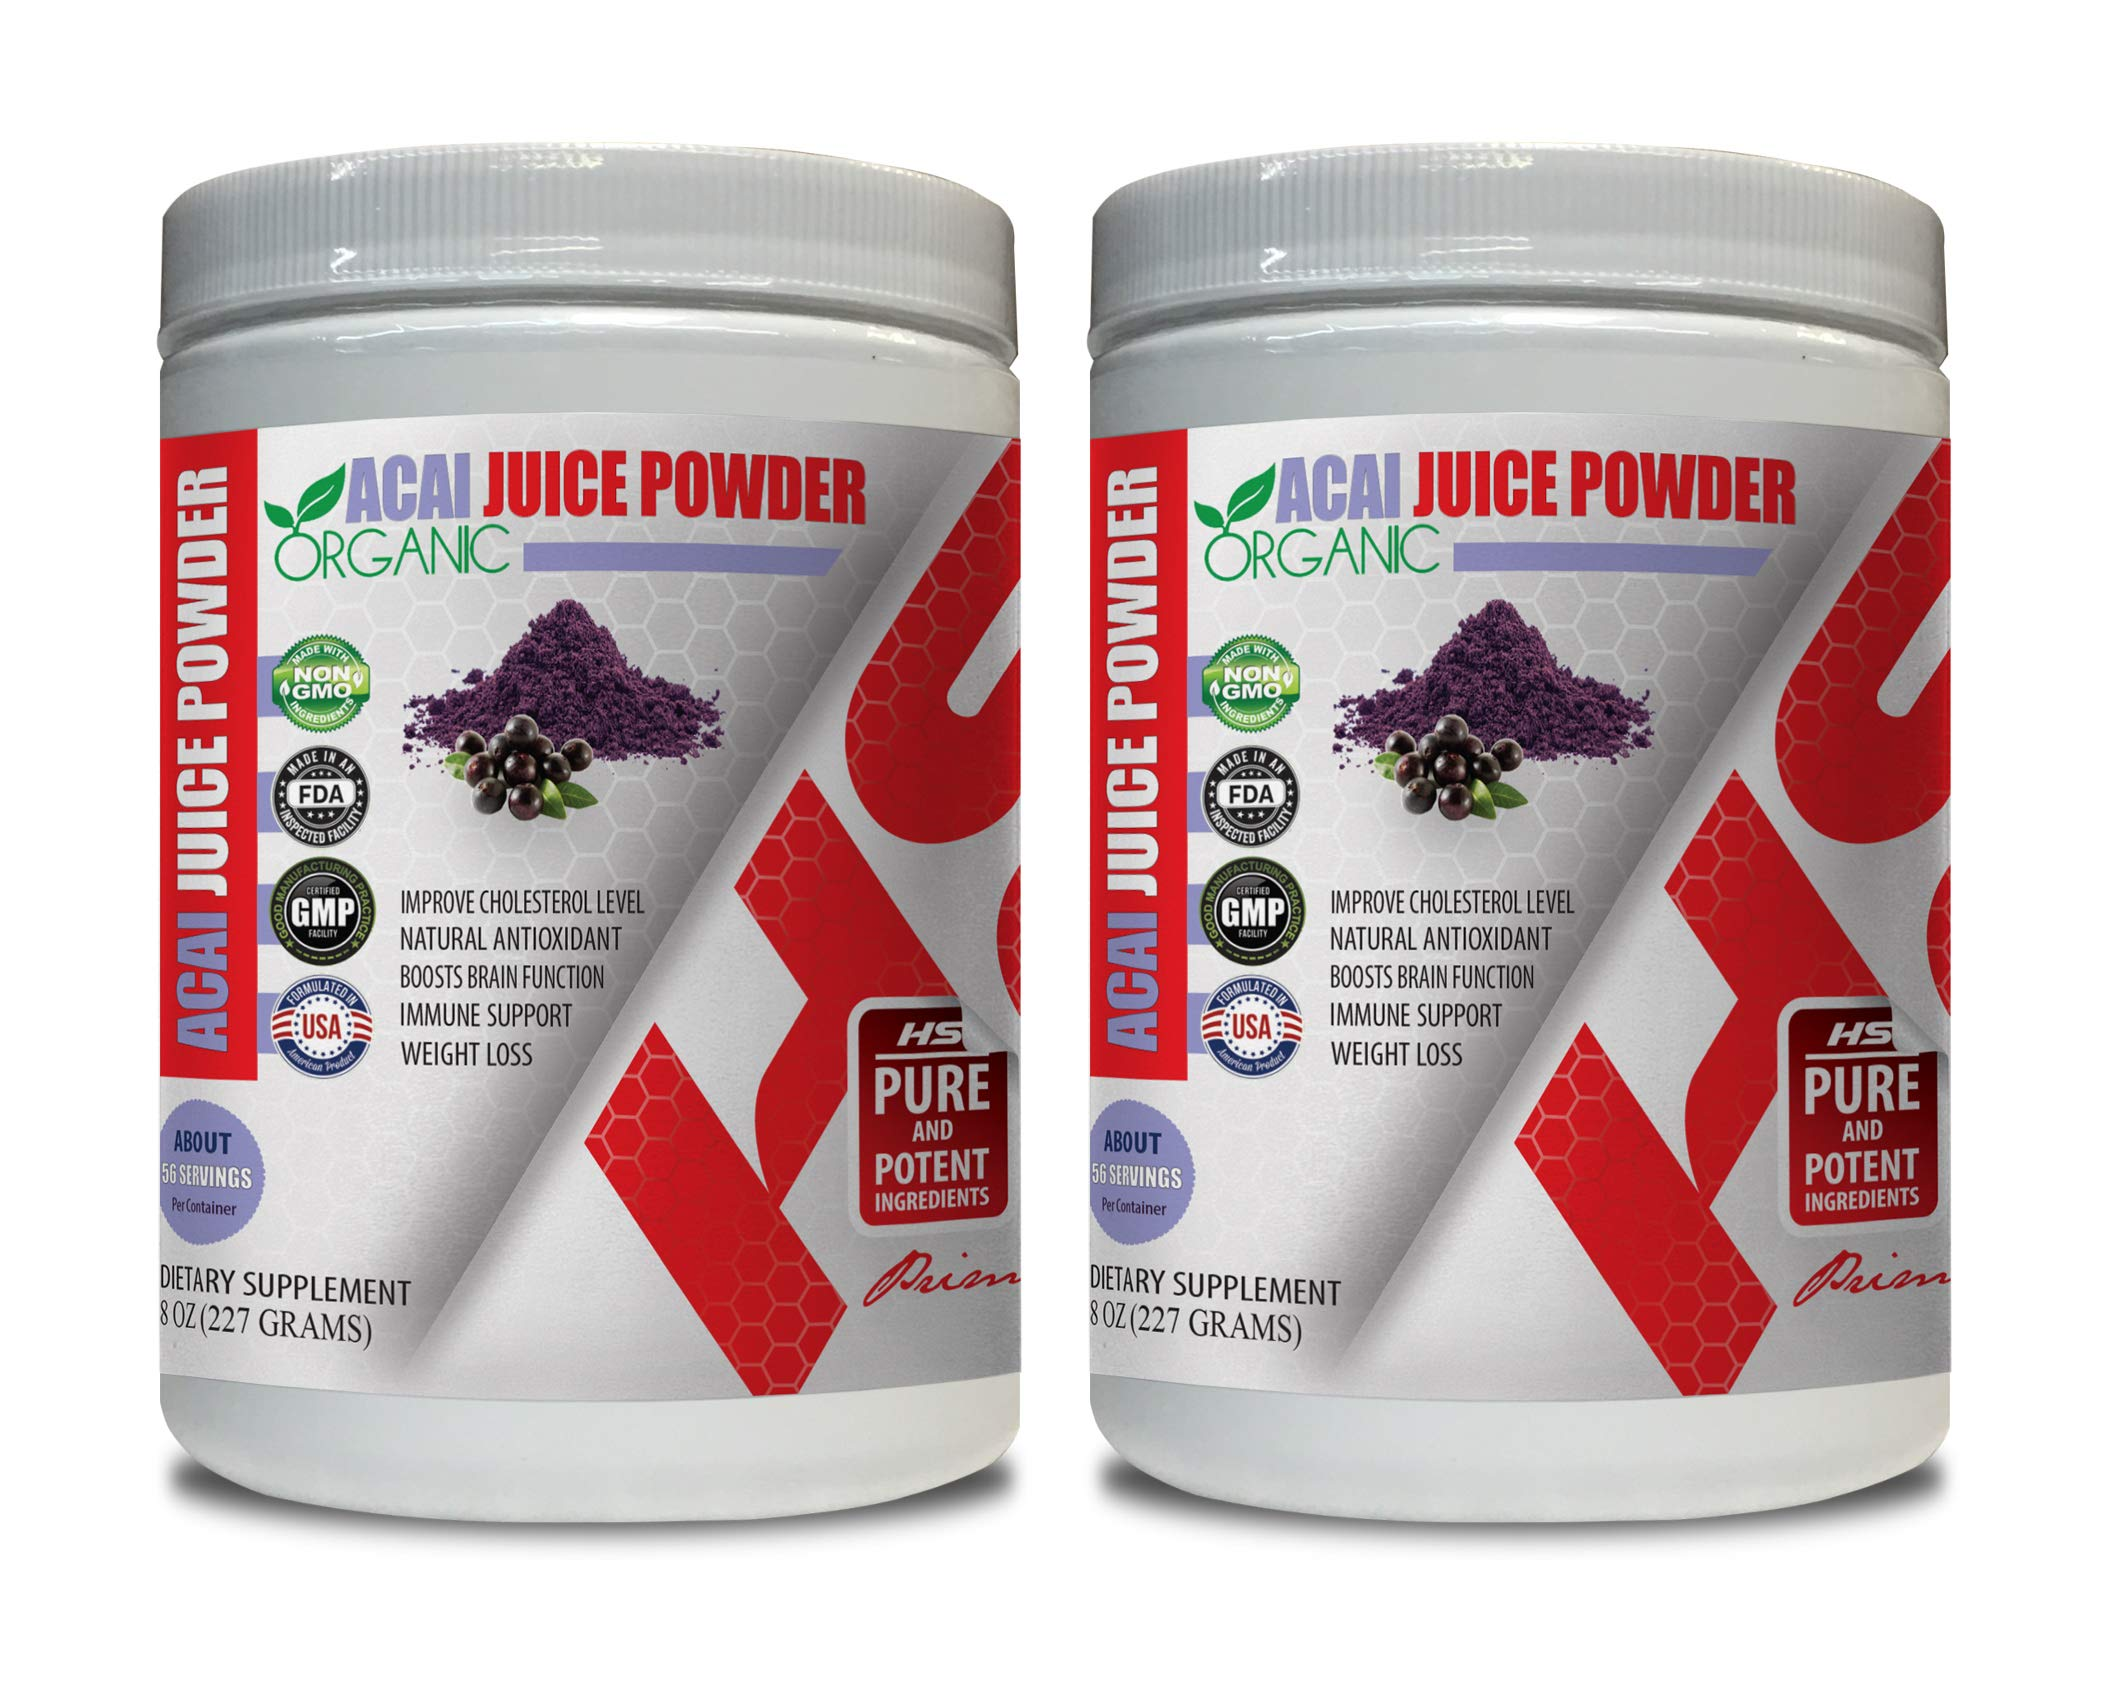 Immune Supplement for Adults - ACAI Juice Powder Organic - Natural ANTIOXIDANT - acai Weight Loss Product - 2 Cans 16 OZ (130 Servings)